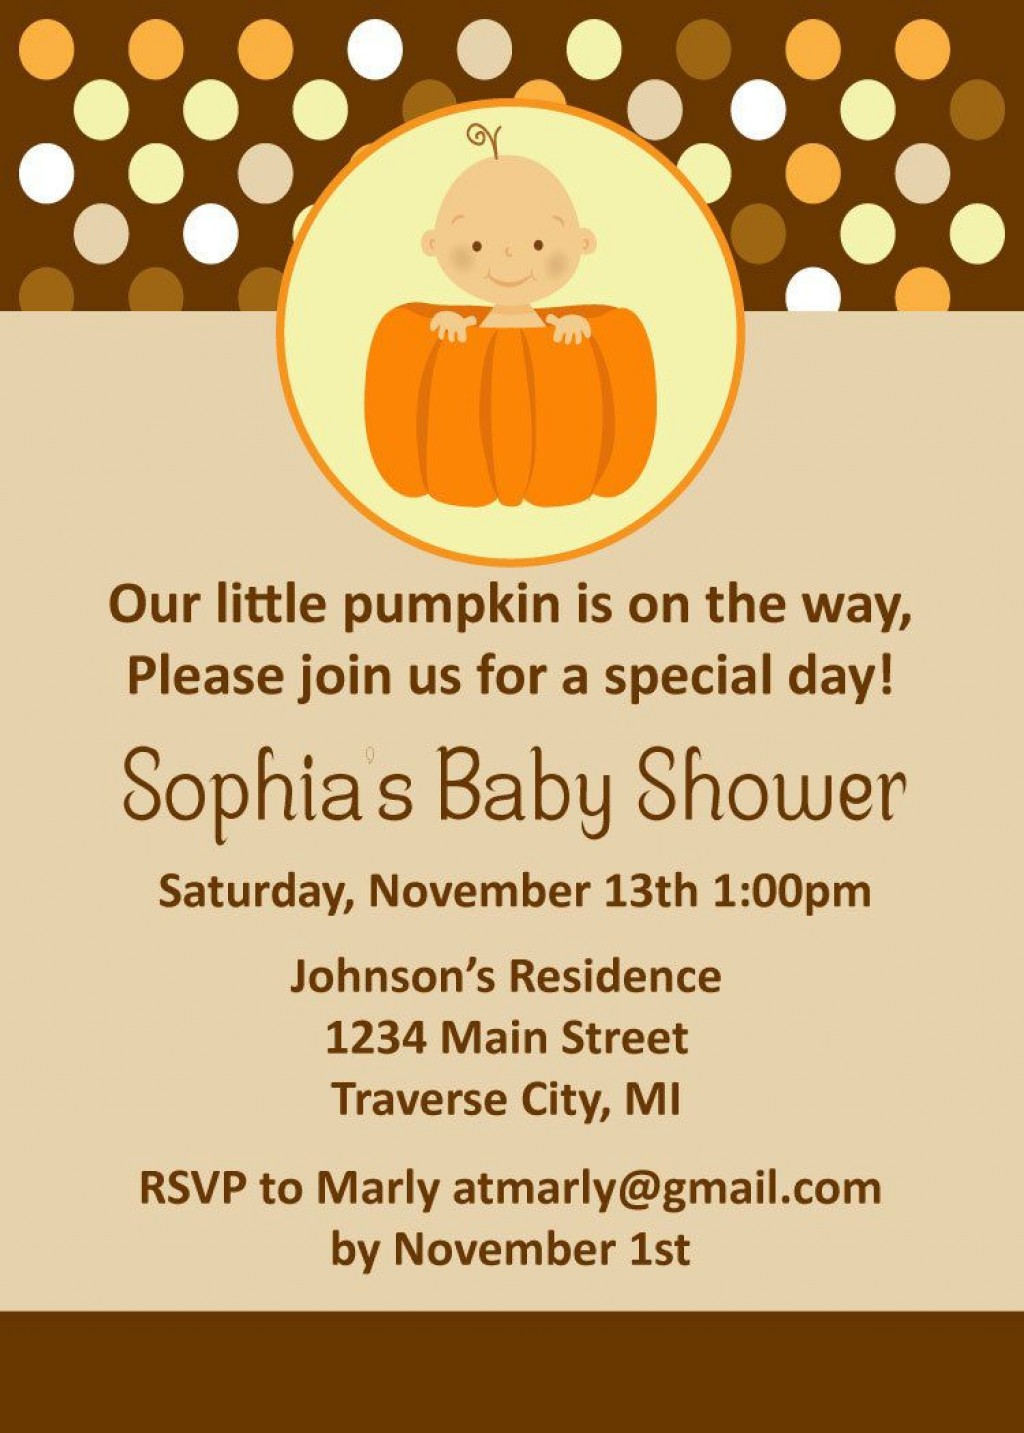 008 Striking Baby Shower Invitation Girl Pumpkin Image  LittleLarge